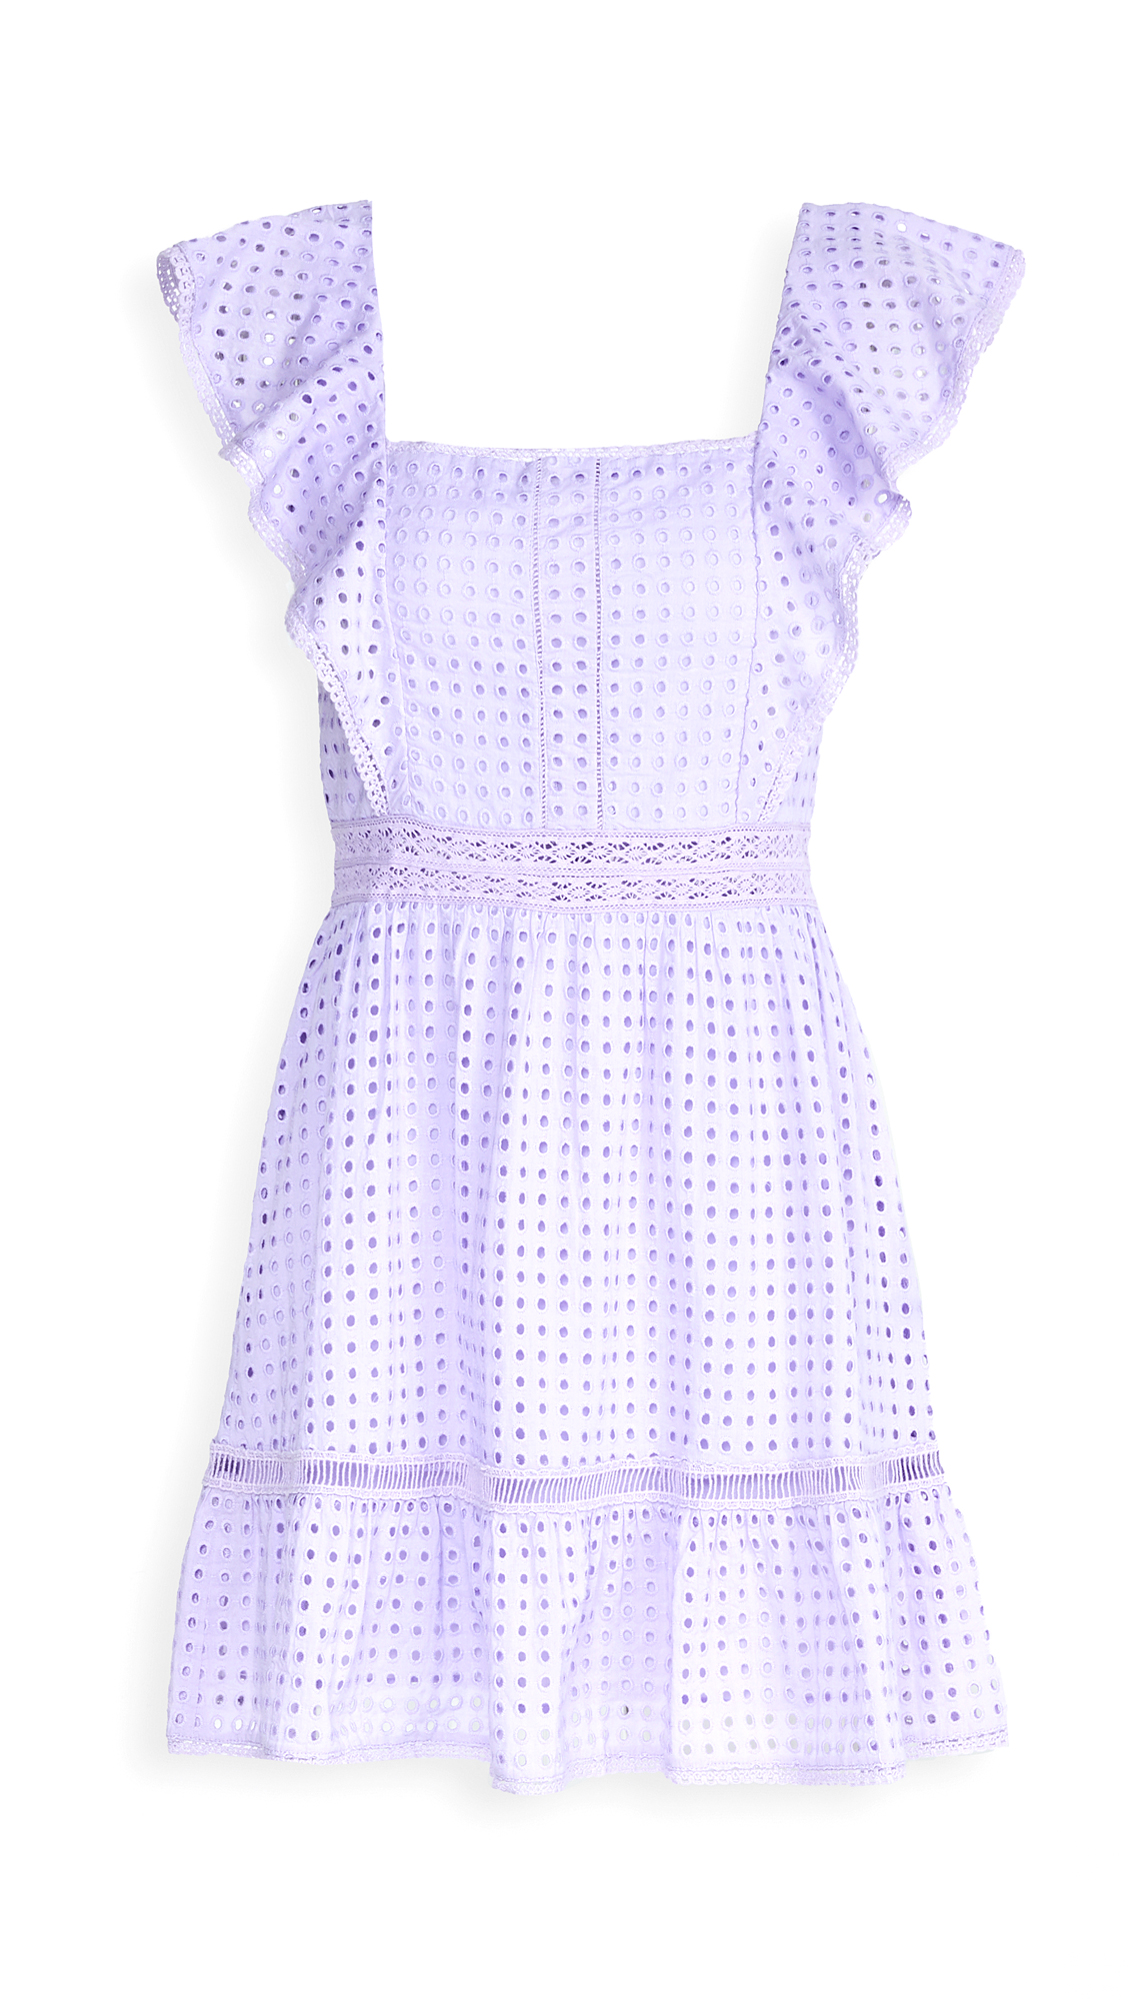 alice + olivia Remada Ruffle Dress